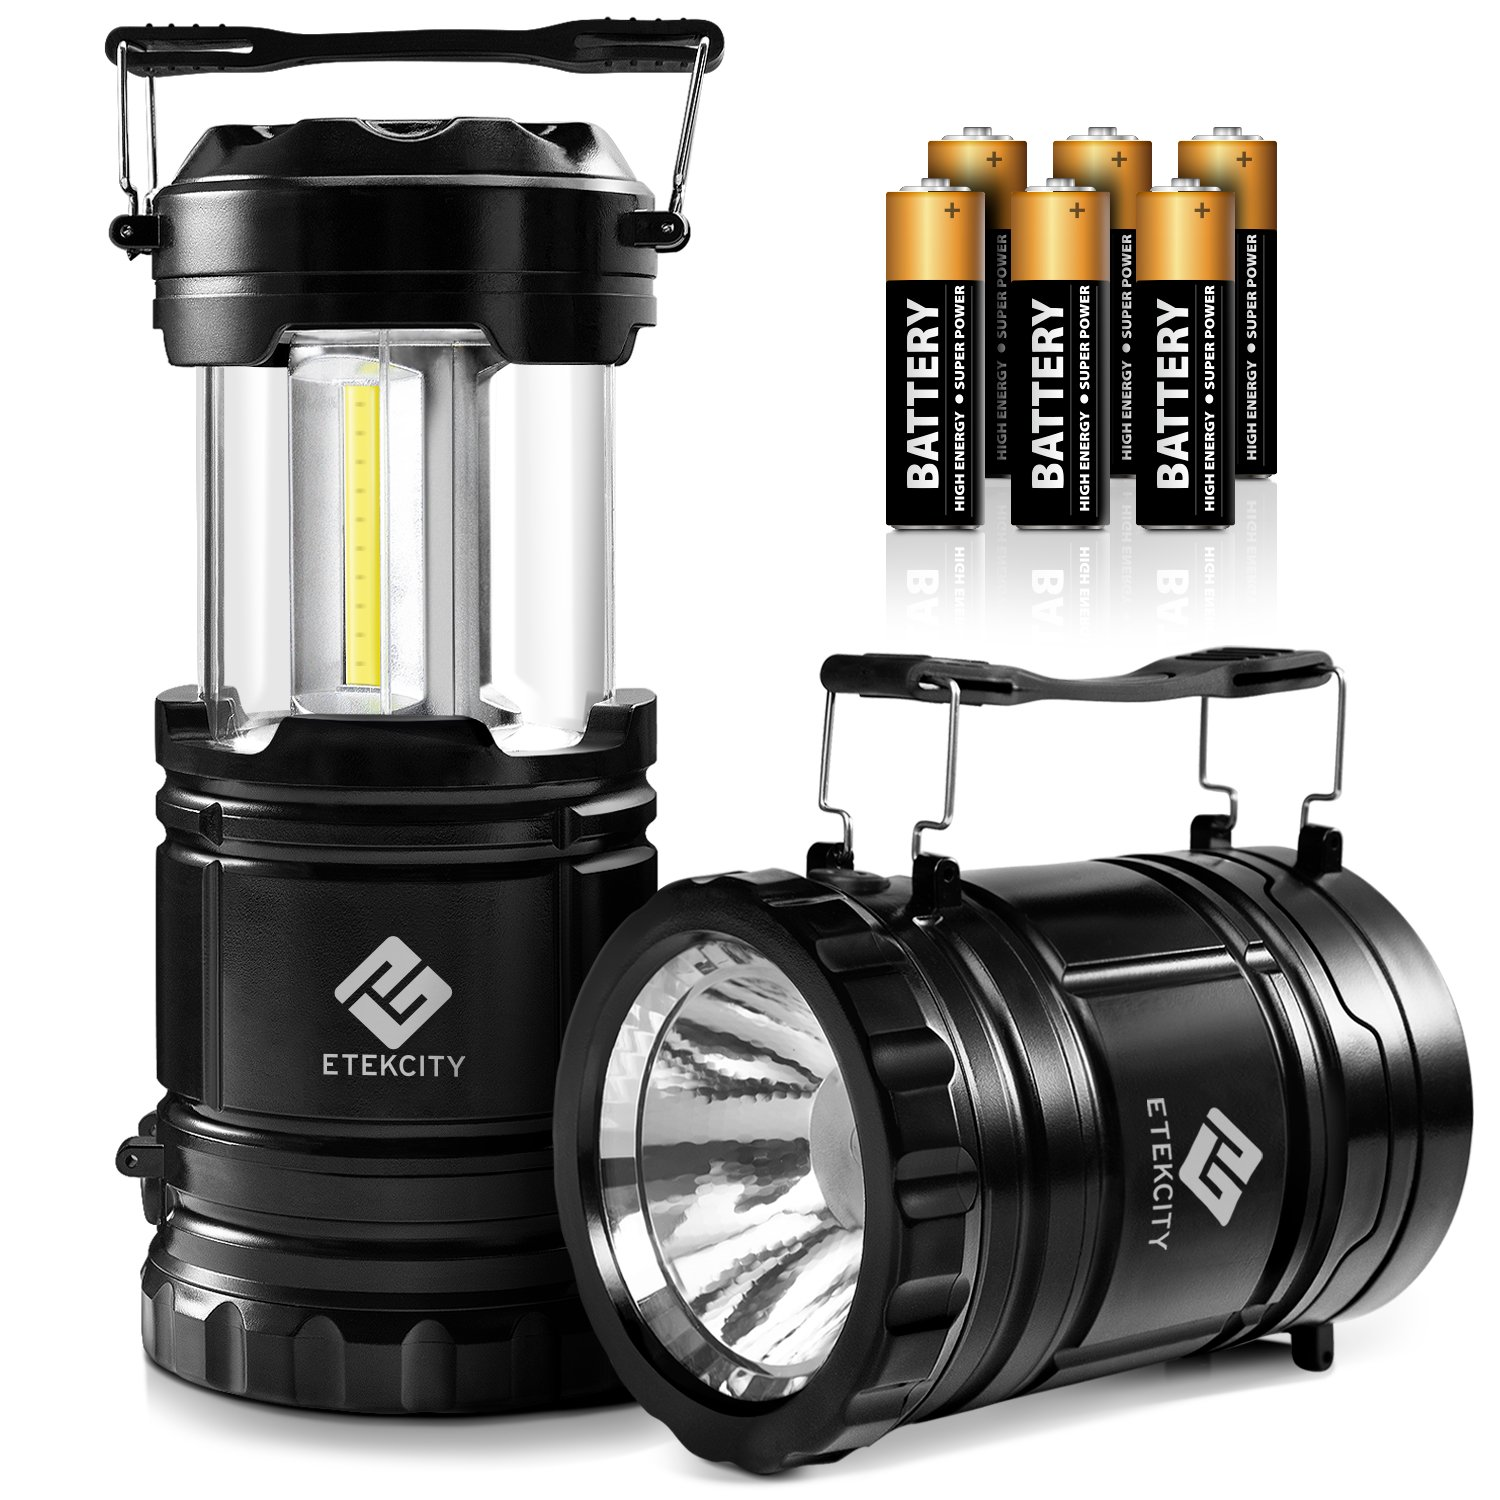 Etekcity 2 Pack LED Camping Lantern Battery Powered Flashlights Portable 2-in-1 Collapsible Lantern Lights, Survival Light for Hiking, Fishing, Reading, Hurricane, Storms, Power Outage by Etekcity